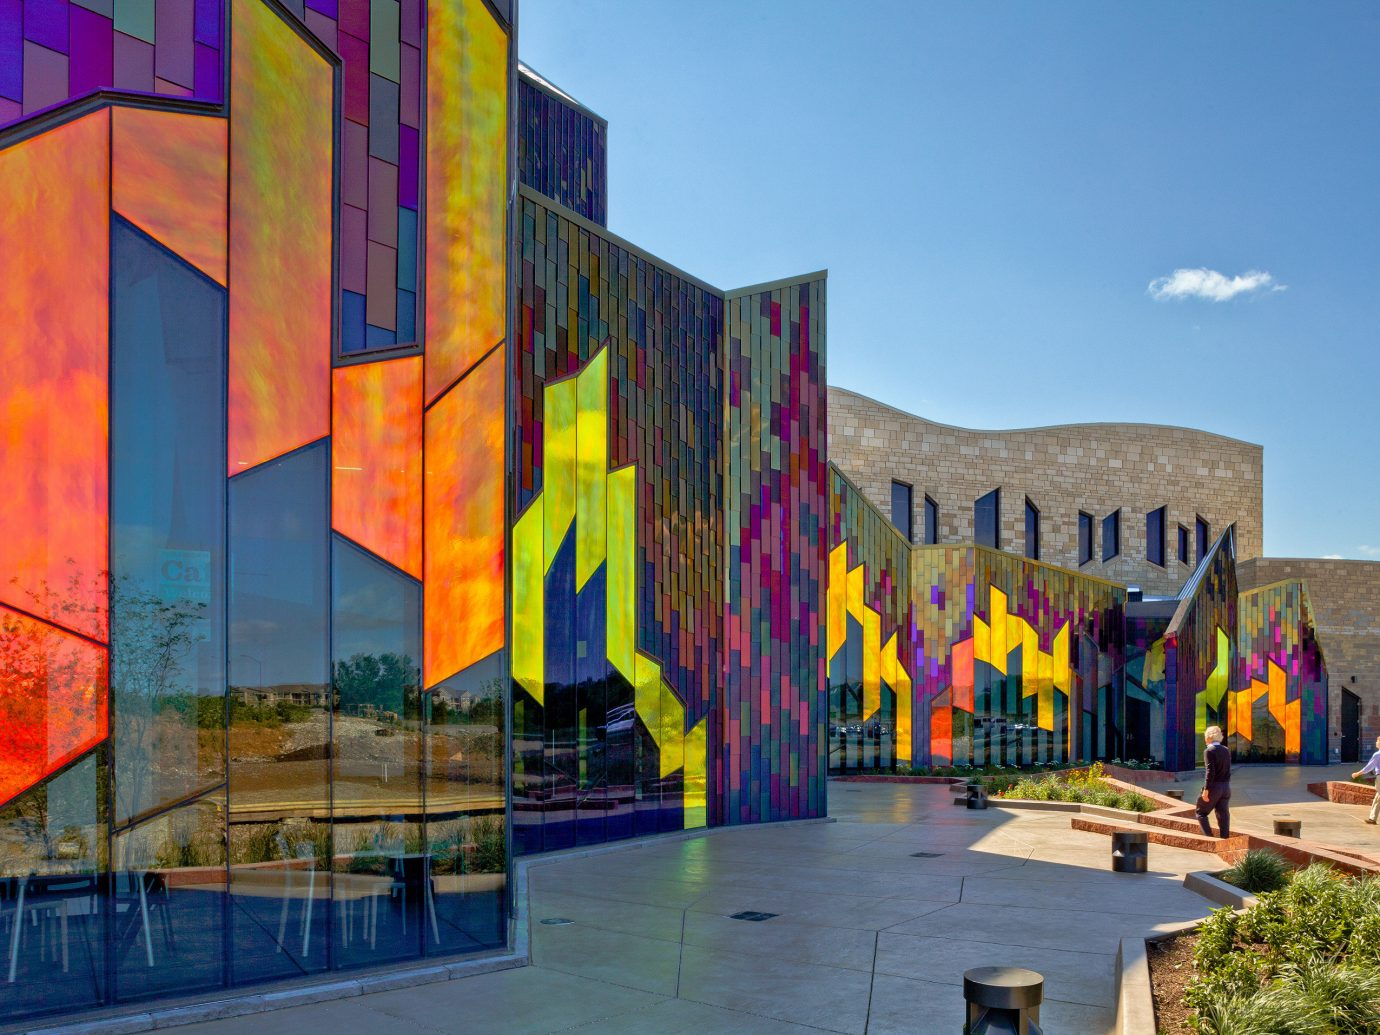 City Kansas City Midwest Trip Ideas color outdoor landmark urban area colorful Architecture art mural facade tourist attraction colored